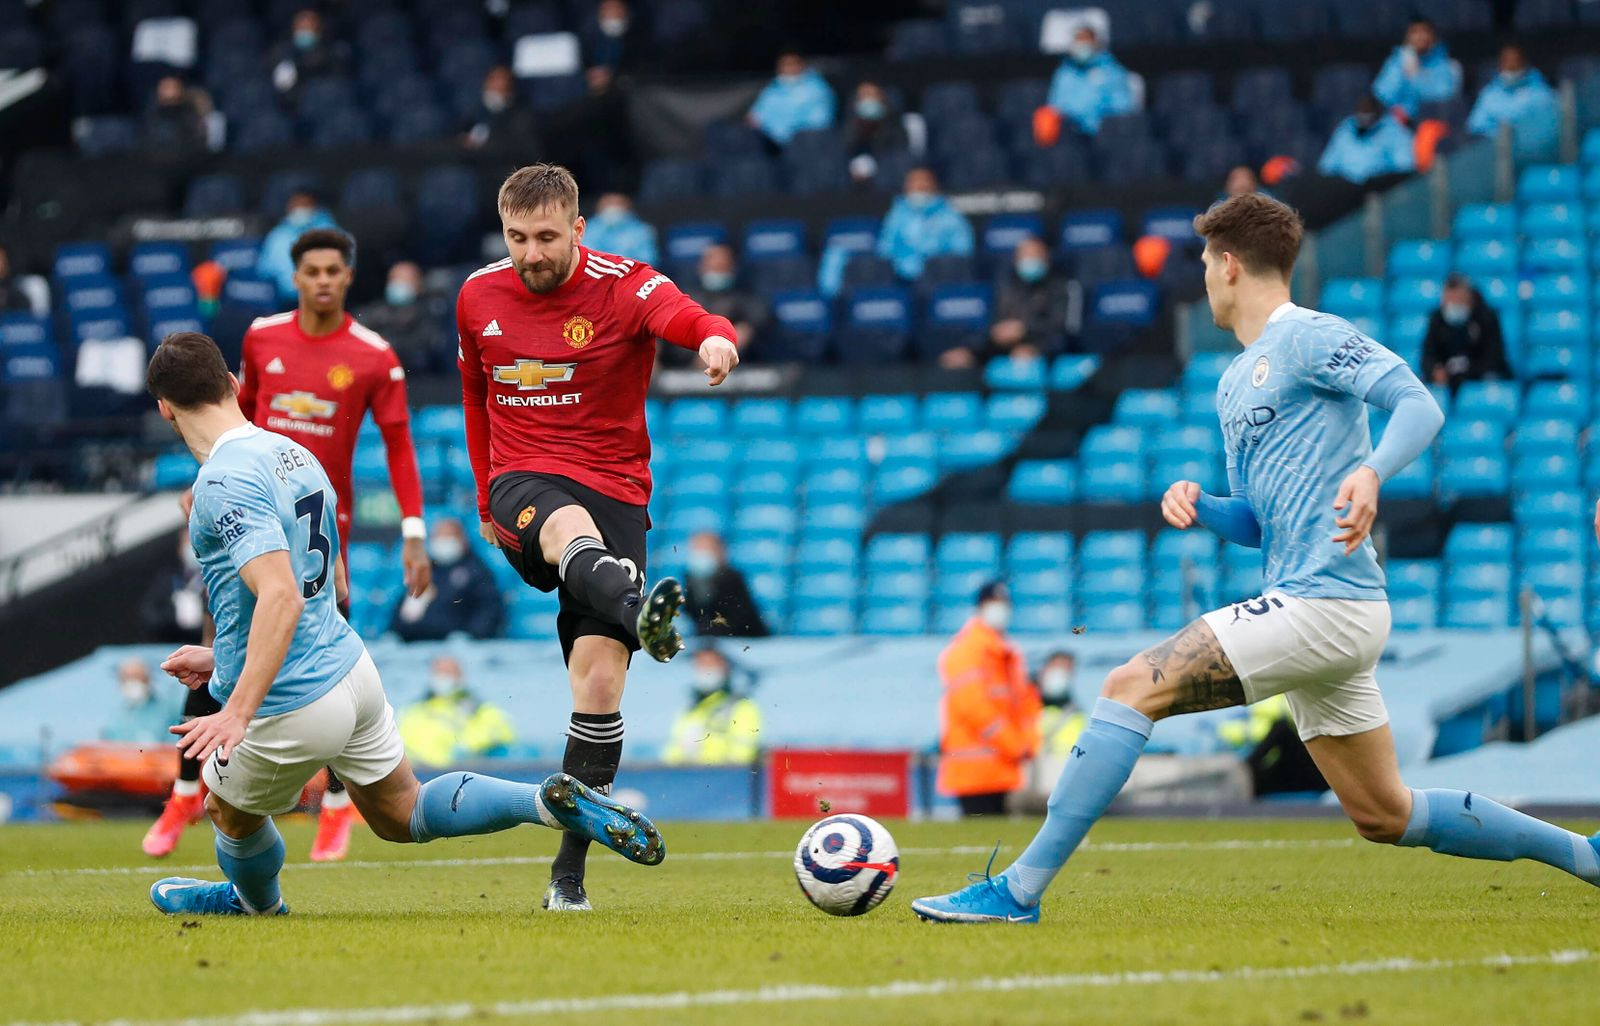 Luke Shaw of Manchester United, ManU takes a shot during the Premier League match at the Etihad Stadium, Manchester. Pi